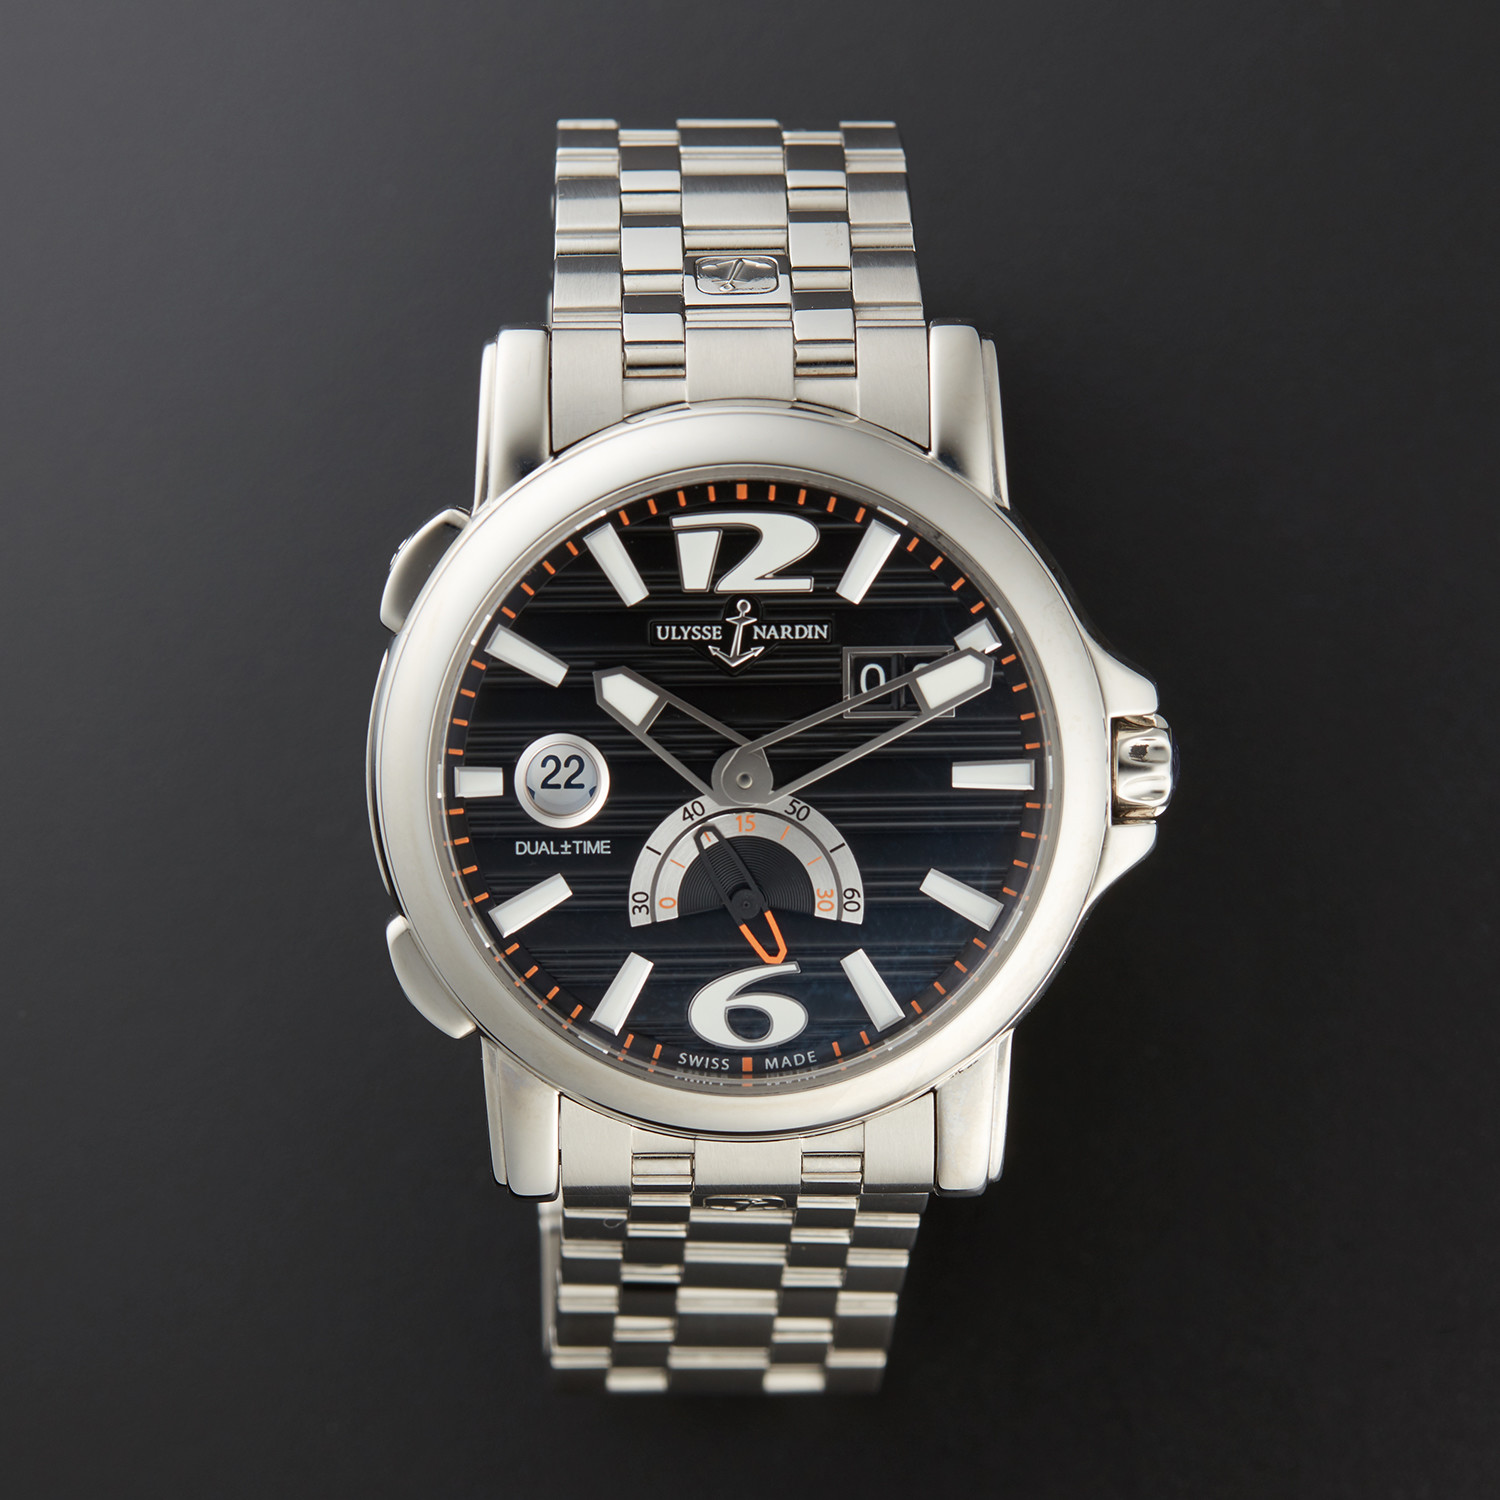 48e2d0be2cdc C274ffcd26c76f7bb42824ee97f5ca70 medium. Ulysse Nardin Maxi GMT Dual Time  ...